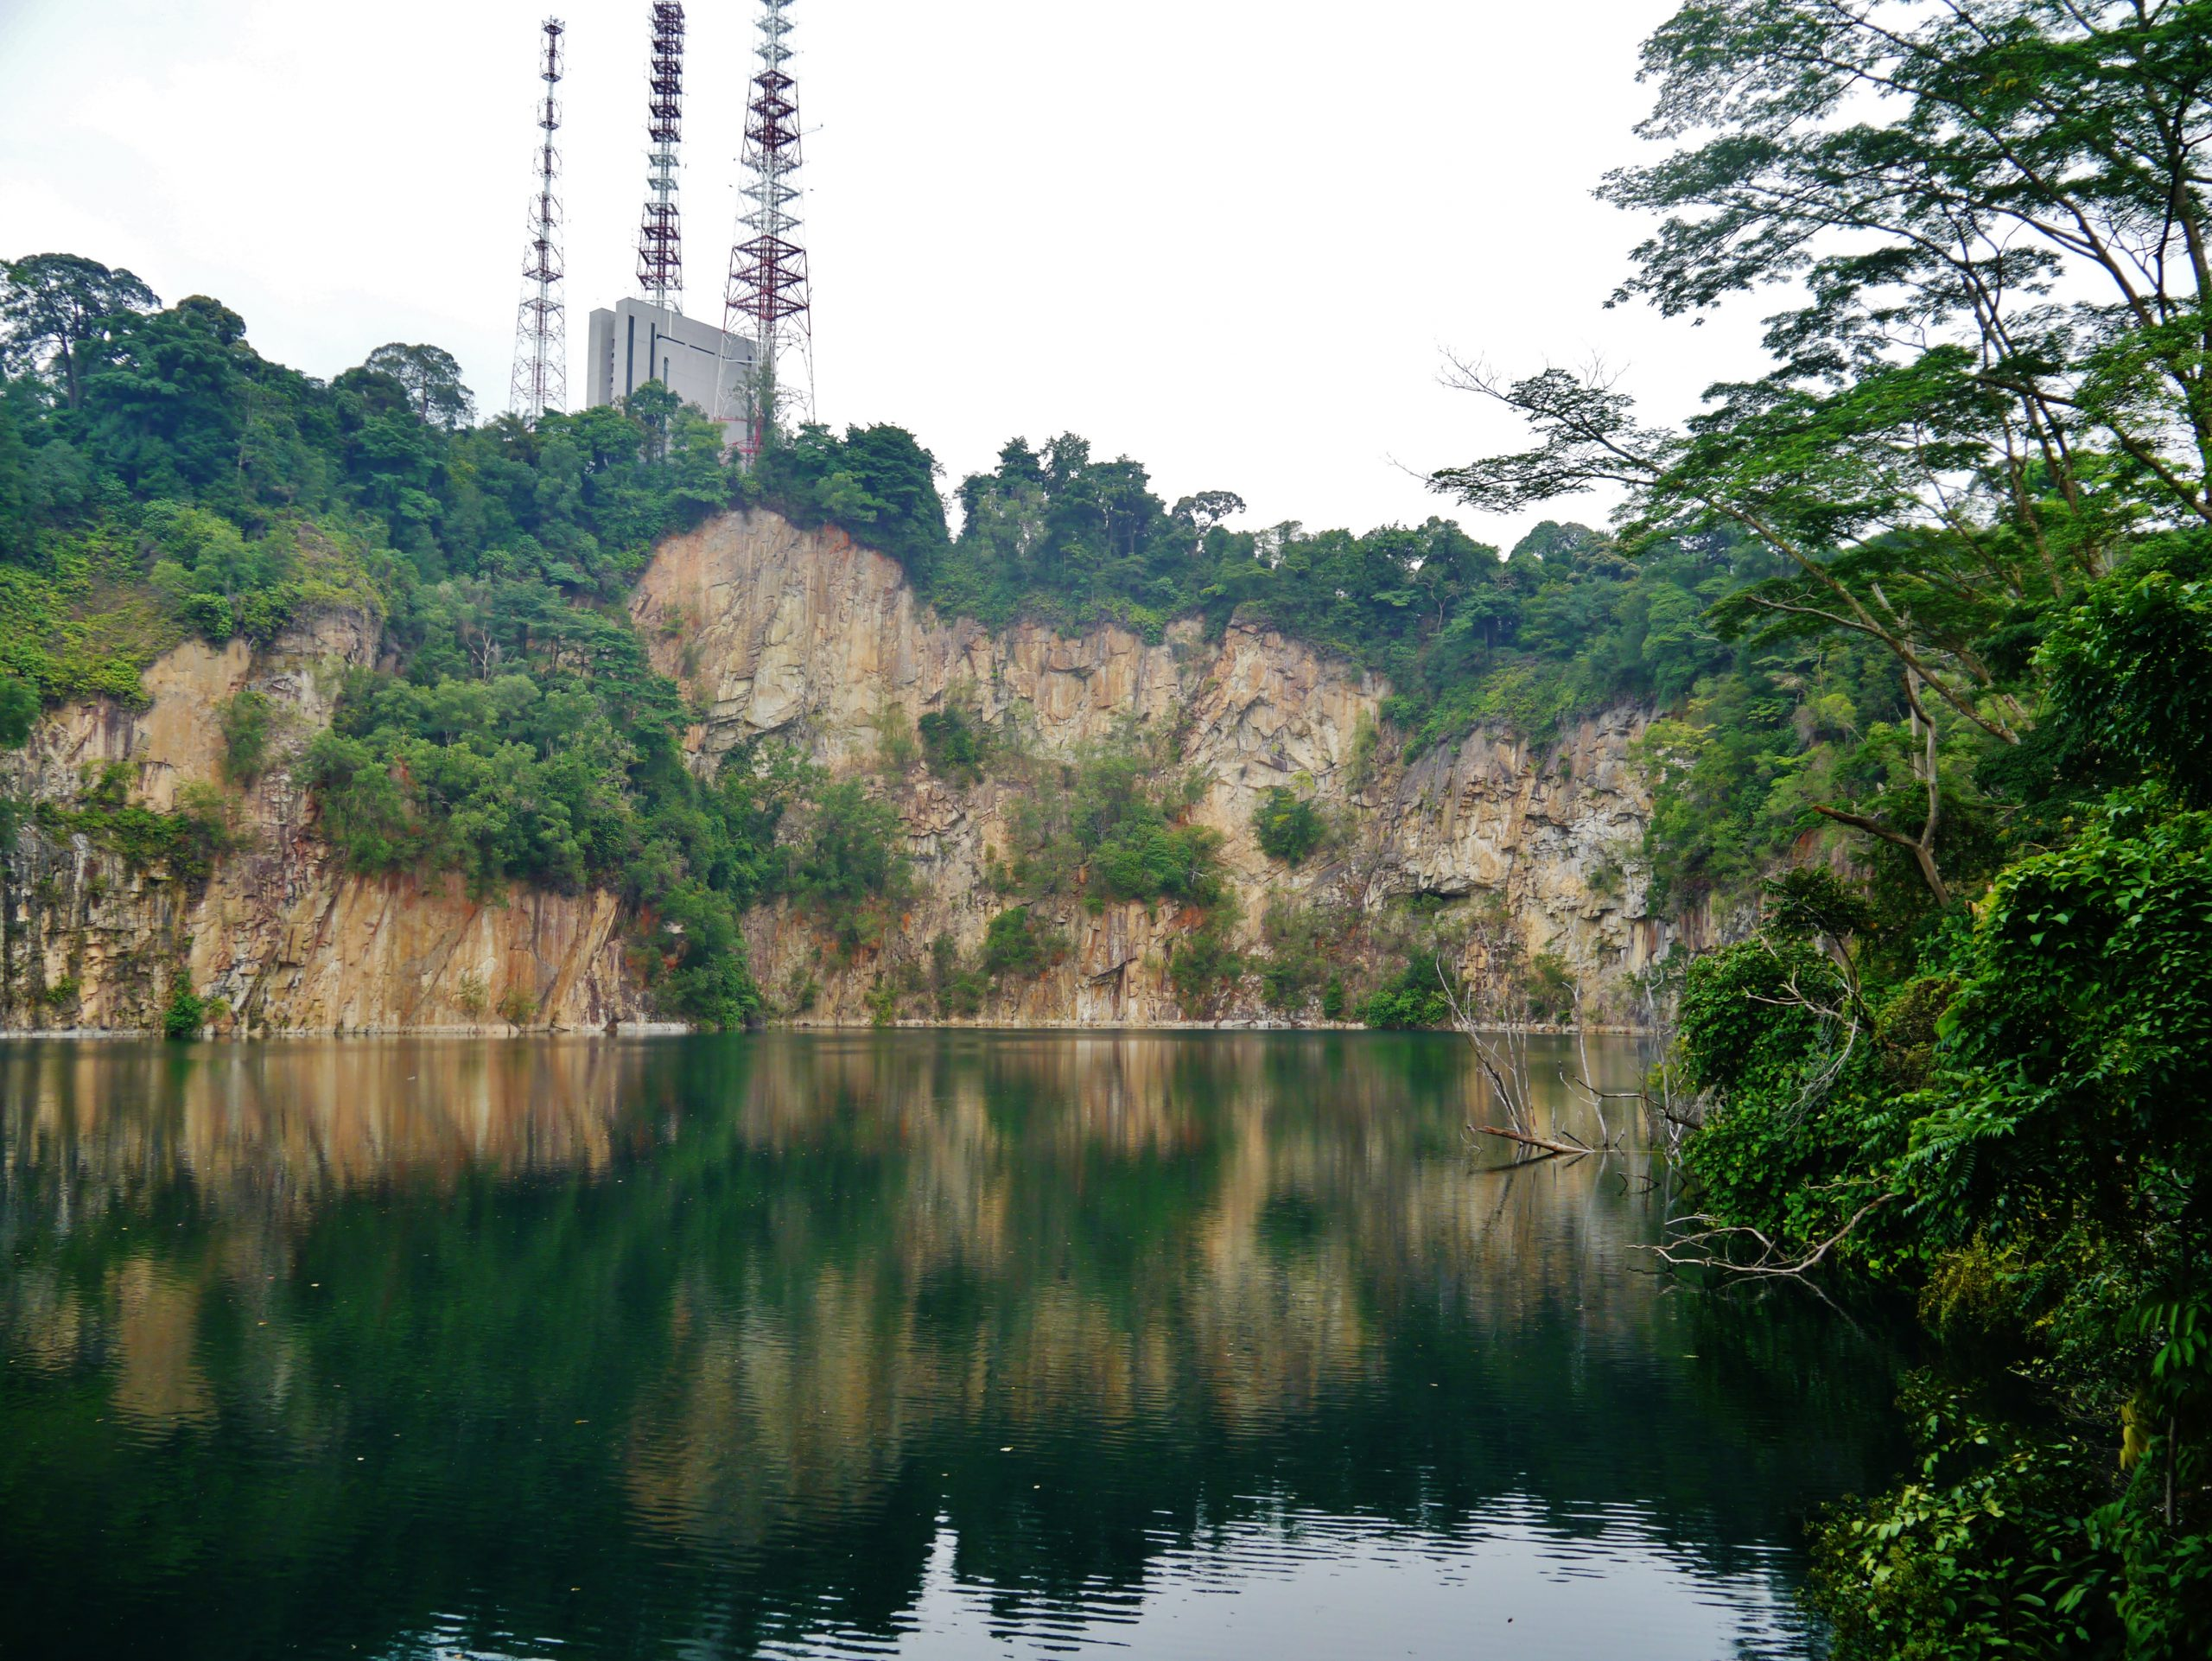 Bukit Timah Hill - Amazing Hill or Highest Natural Point in Singapore